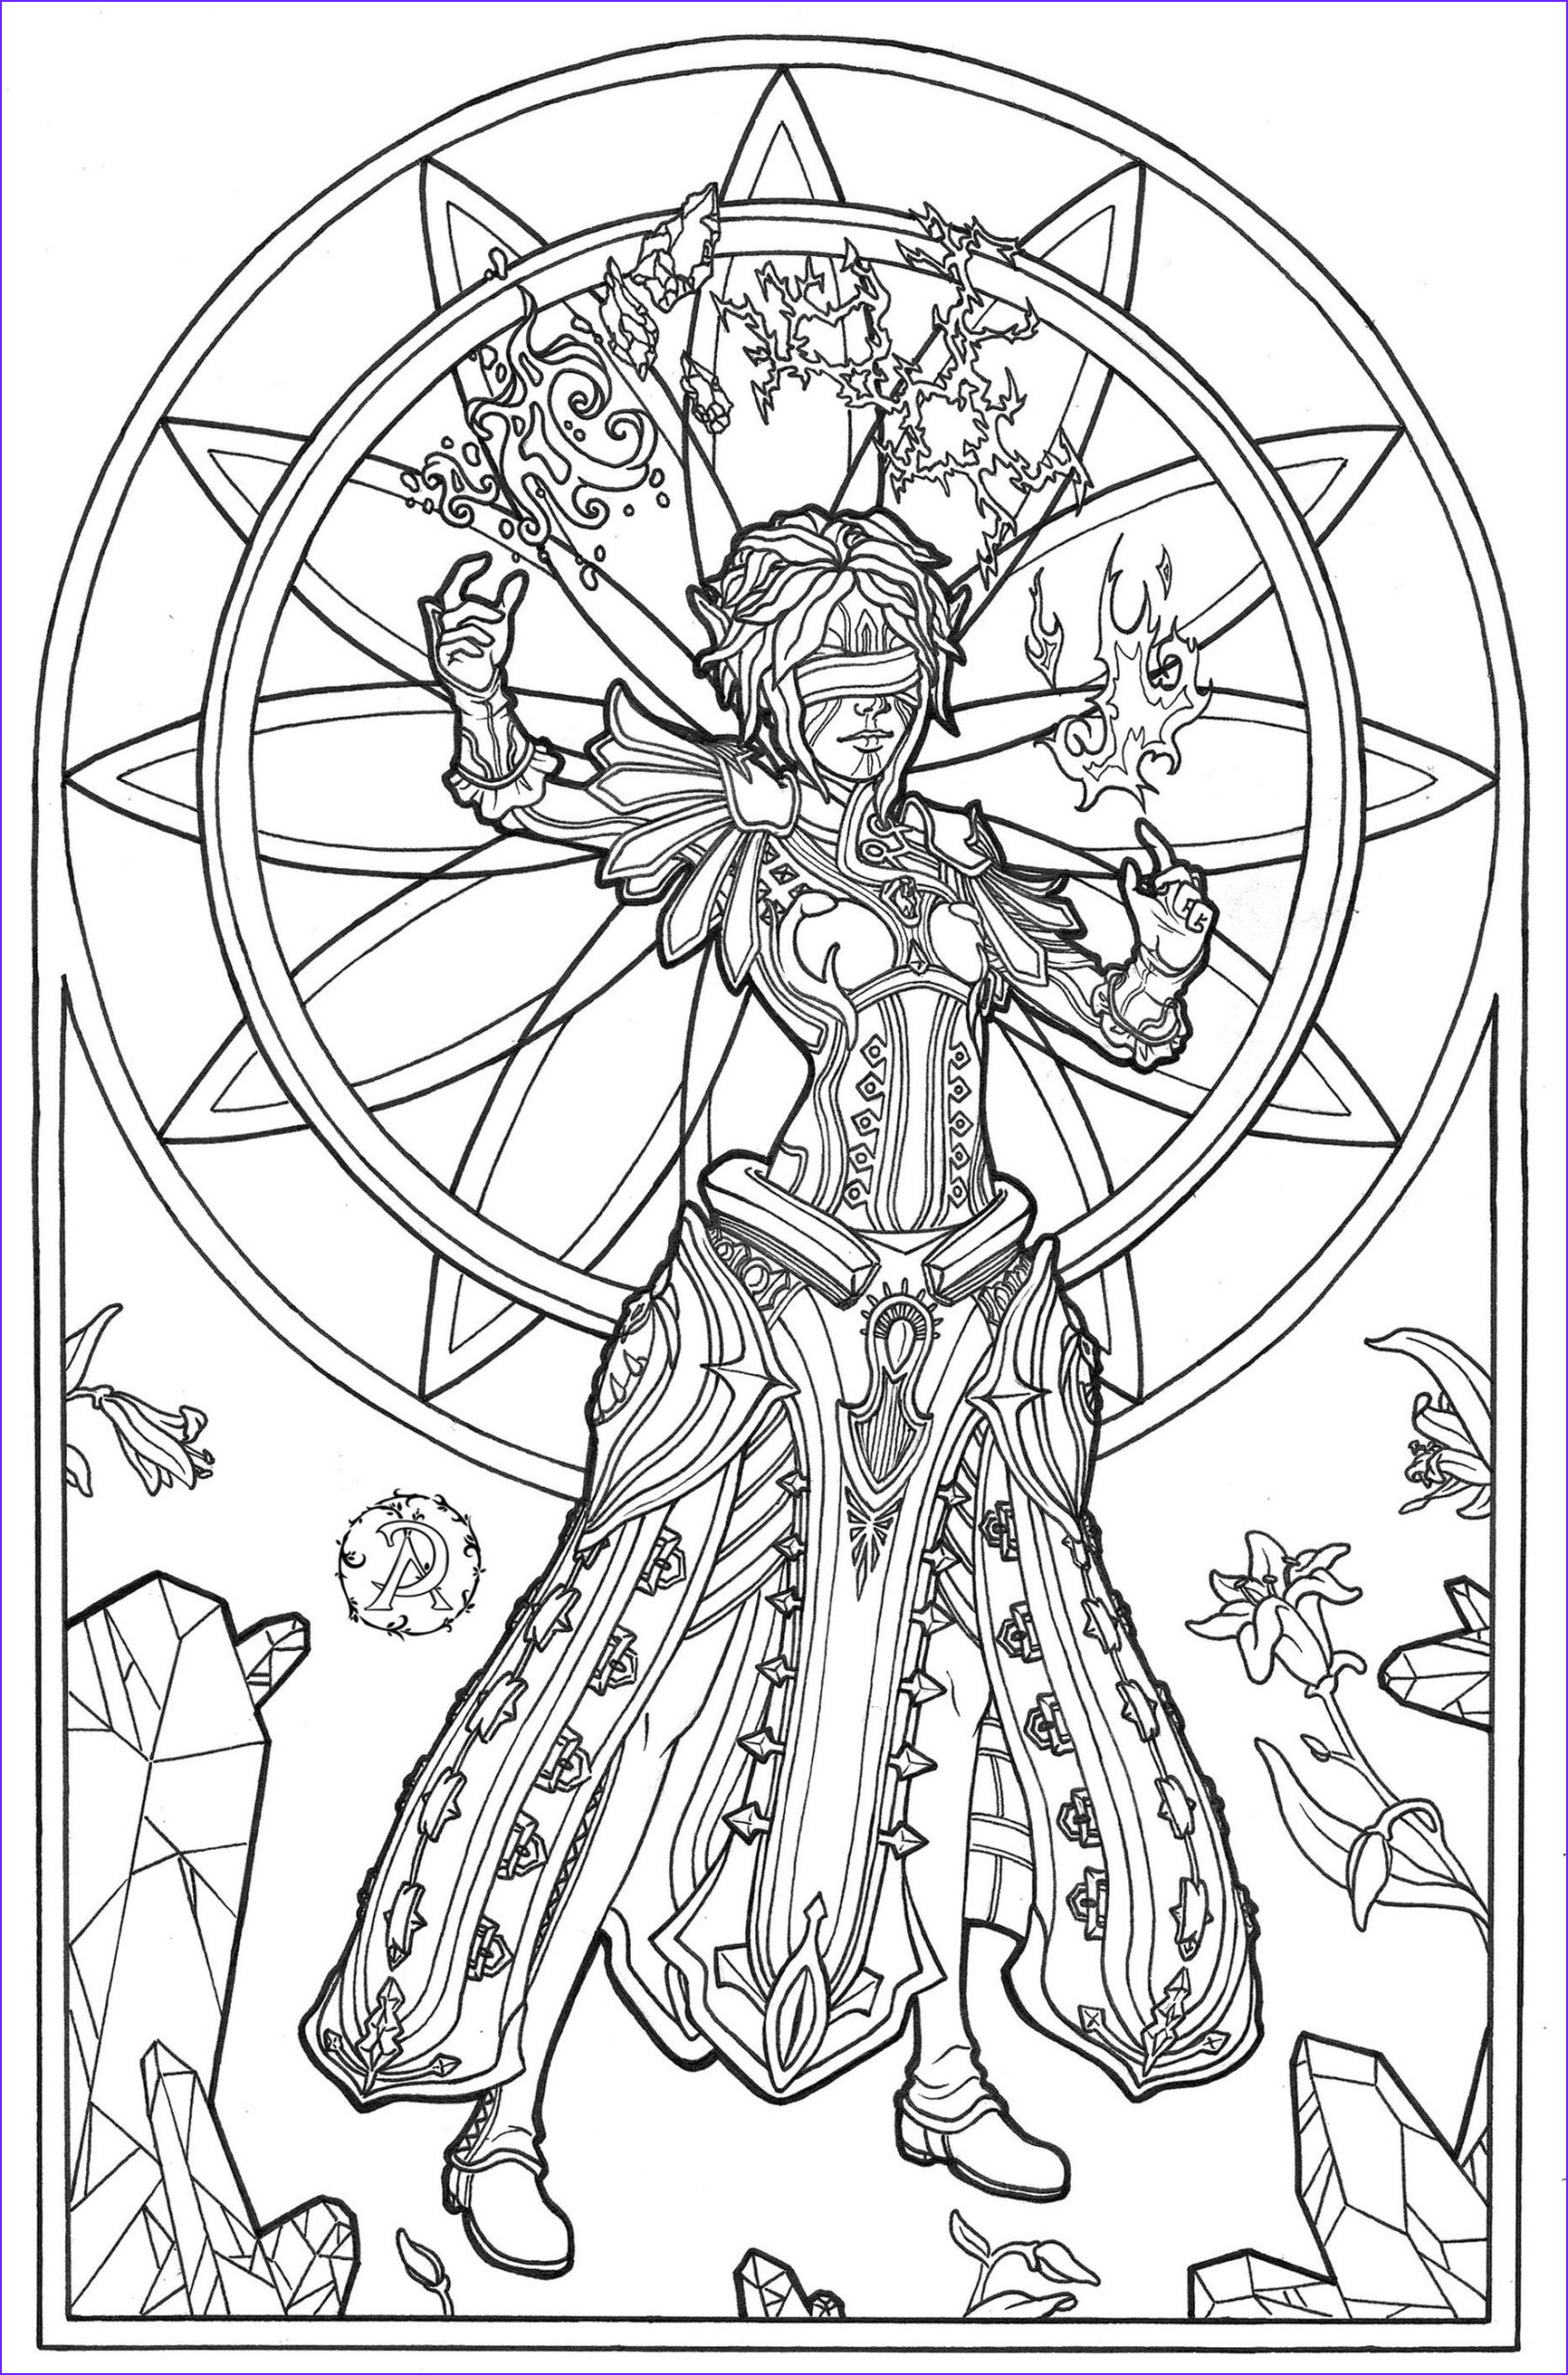 Fantasy Coloring Page for Adults Cool Image Get This Adult Fantasy Coloring Pages 4blm